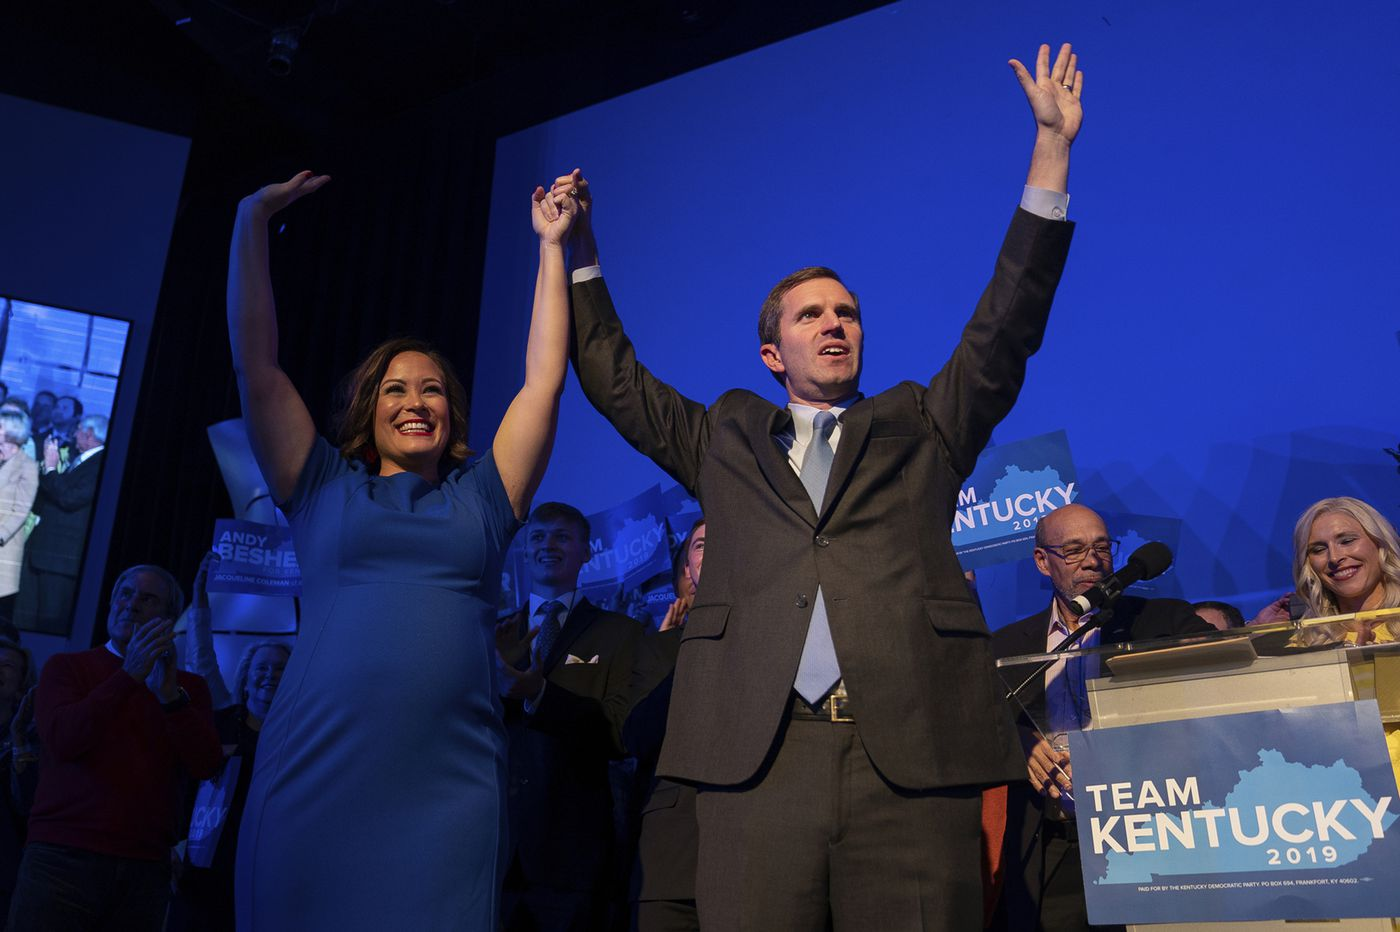 Democrat Andy Beshear wins race for Kentucky governor; Republican Matt Bevin yet to concede